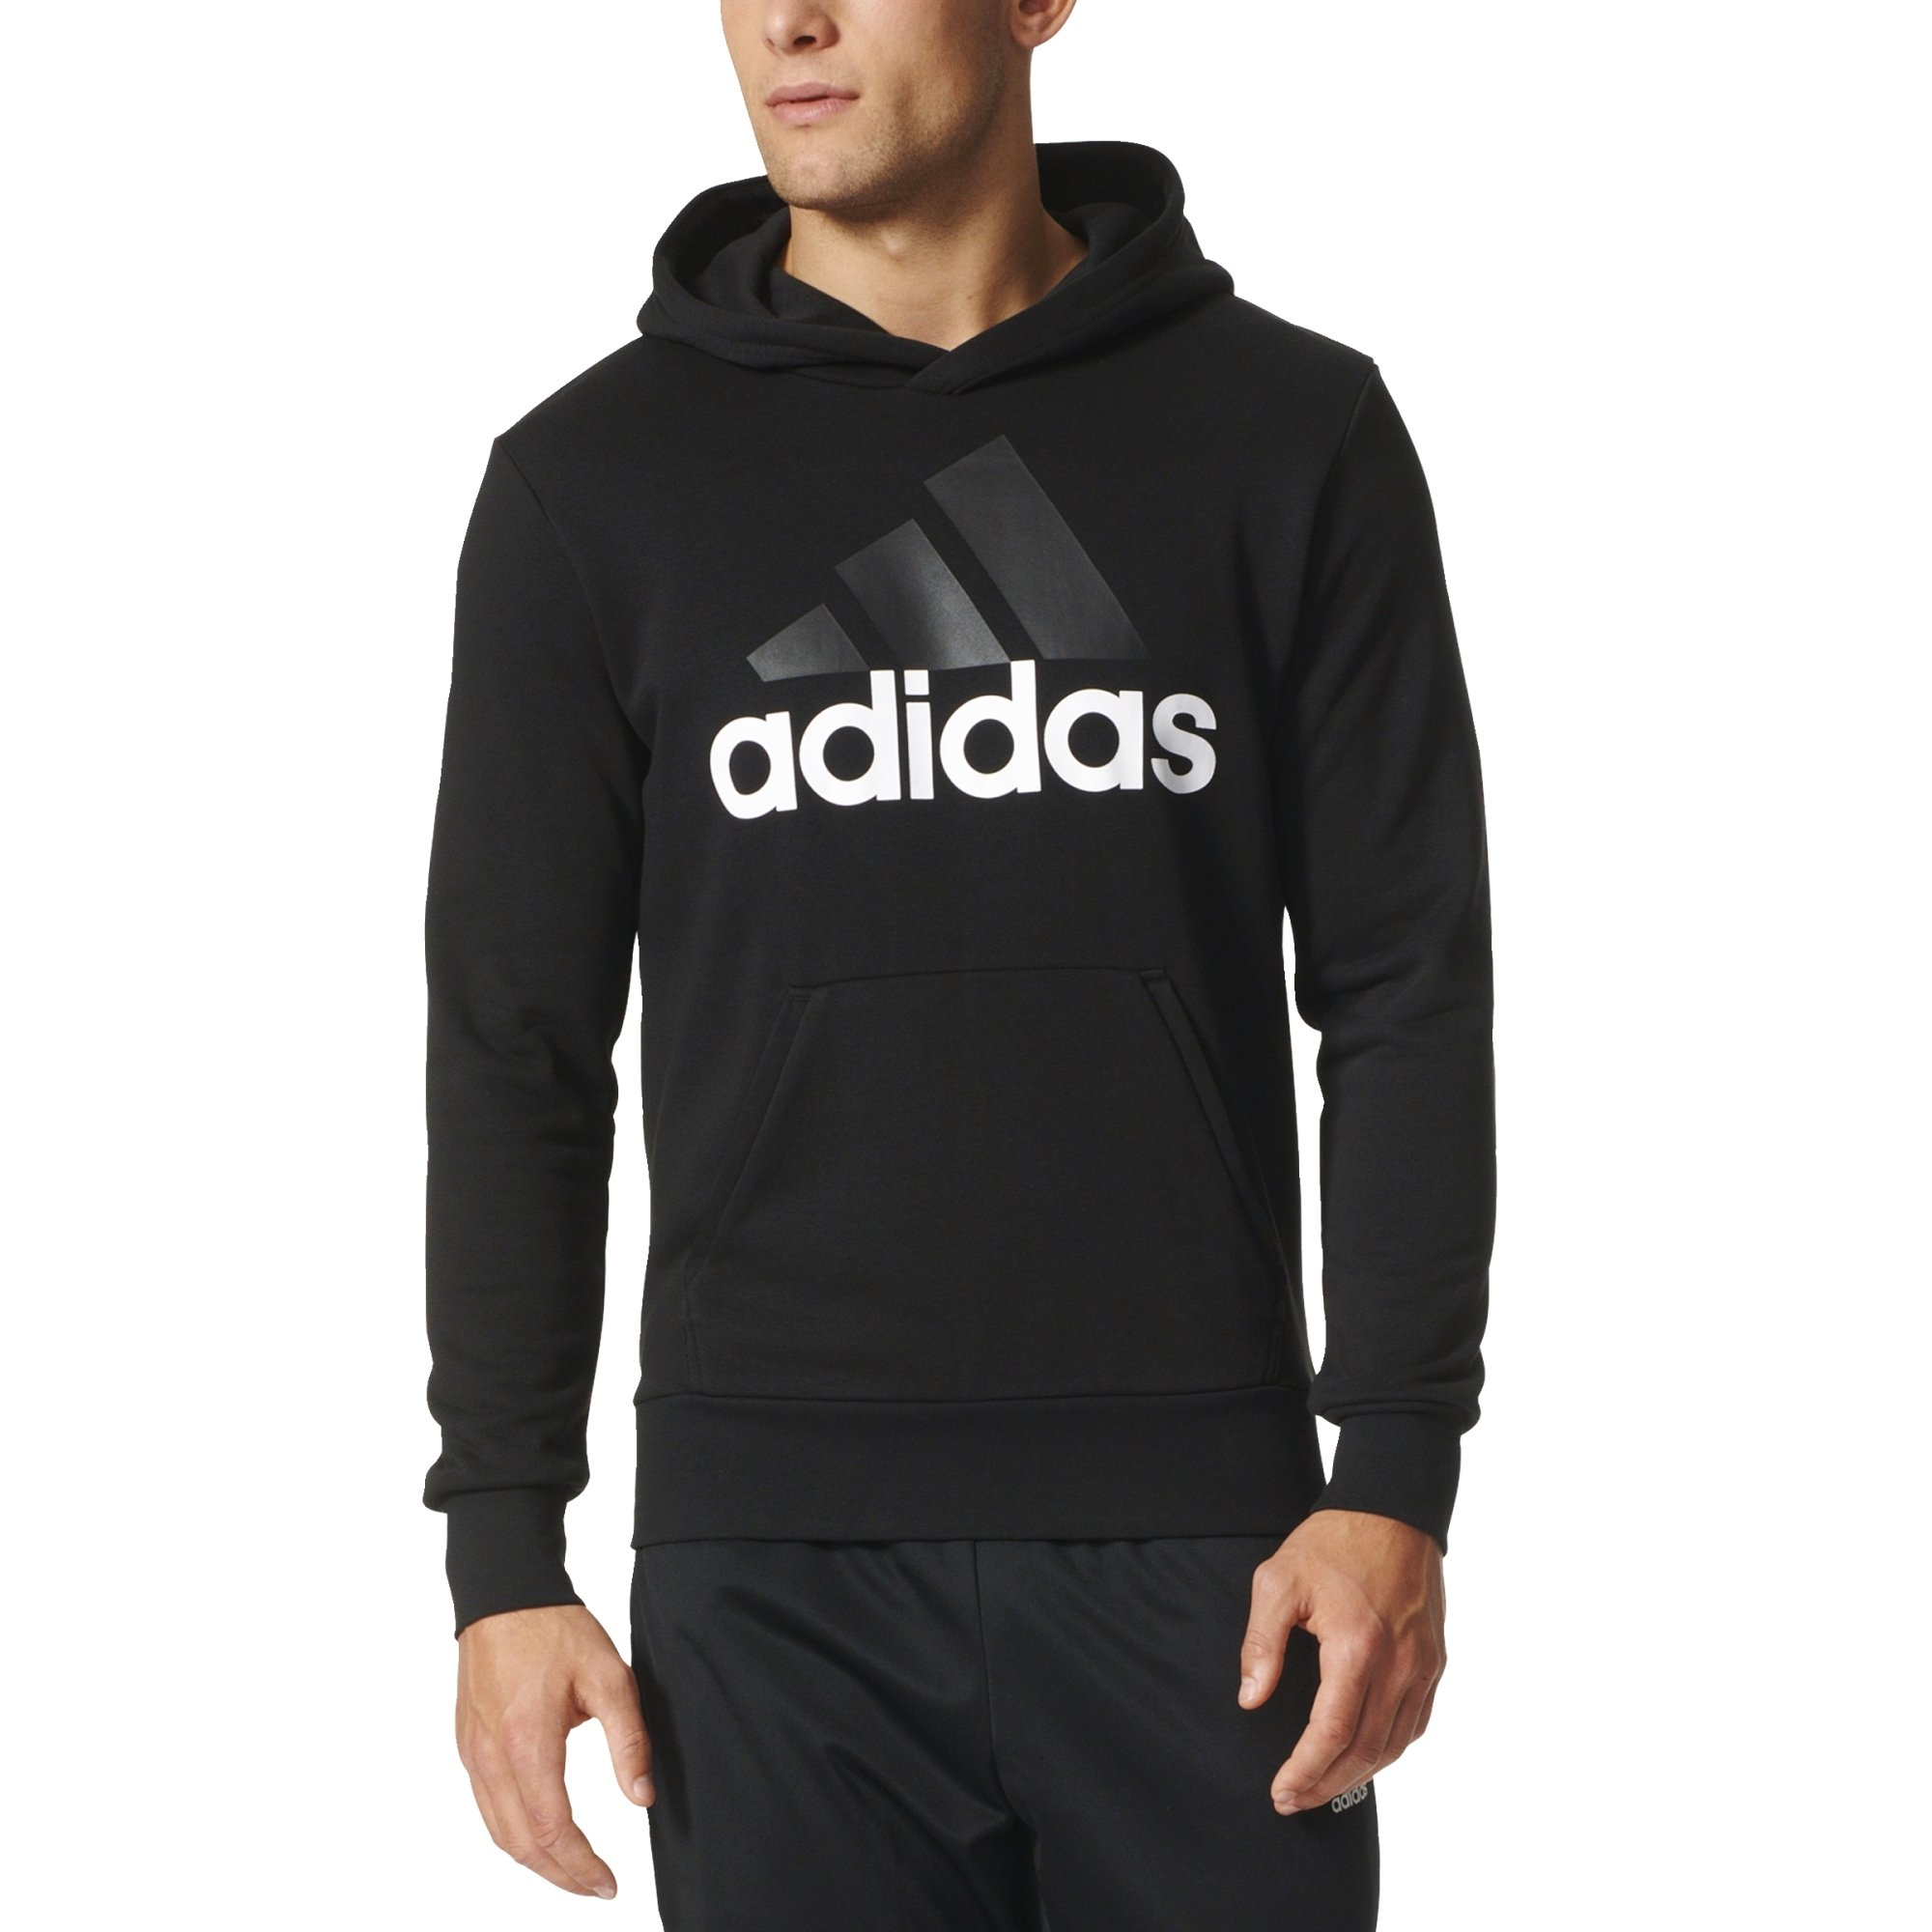 adidas Men's Essential Linear Logo Pullover Hoodie, Black/White, X-Large by adidas